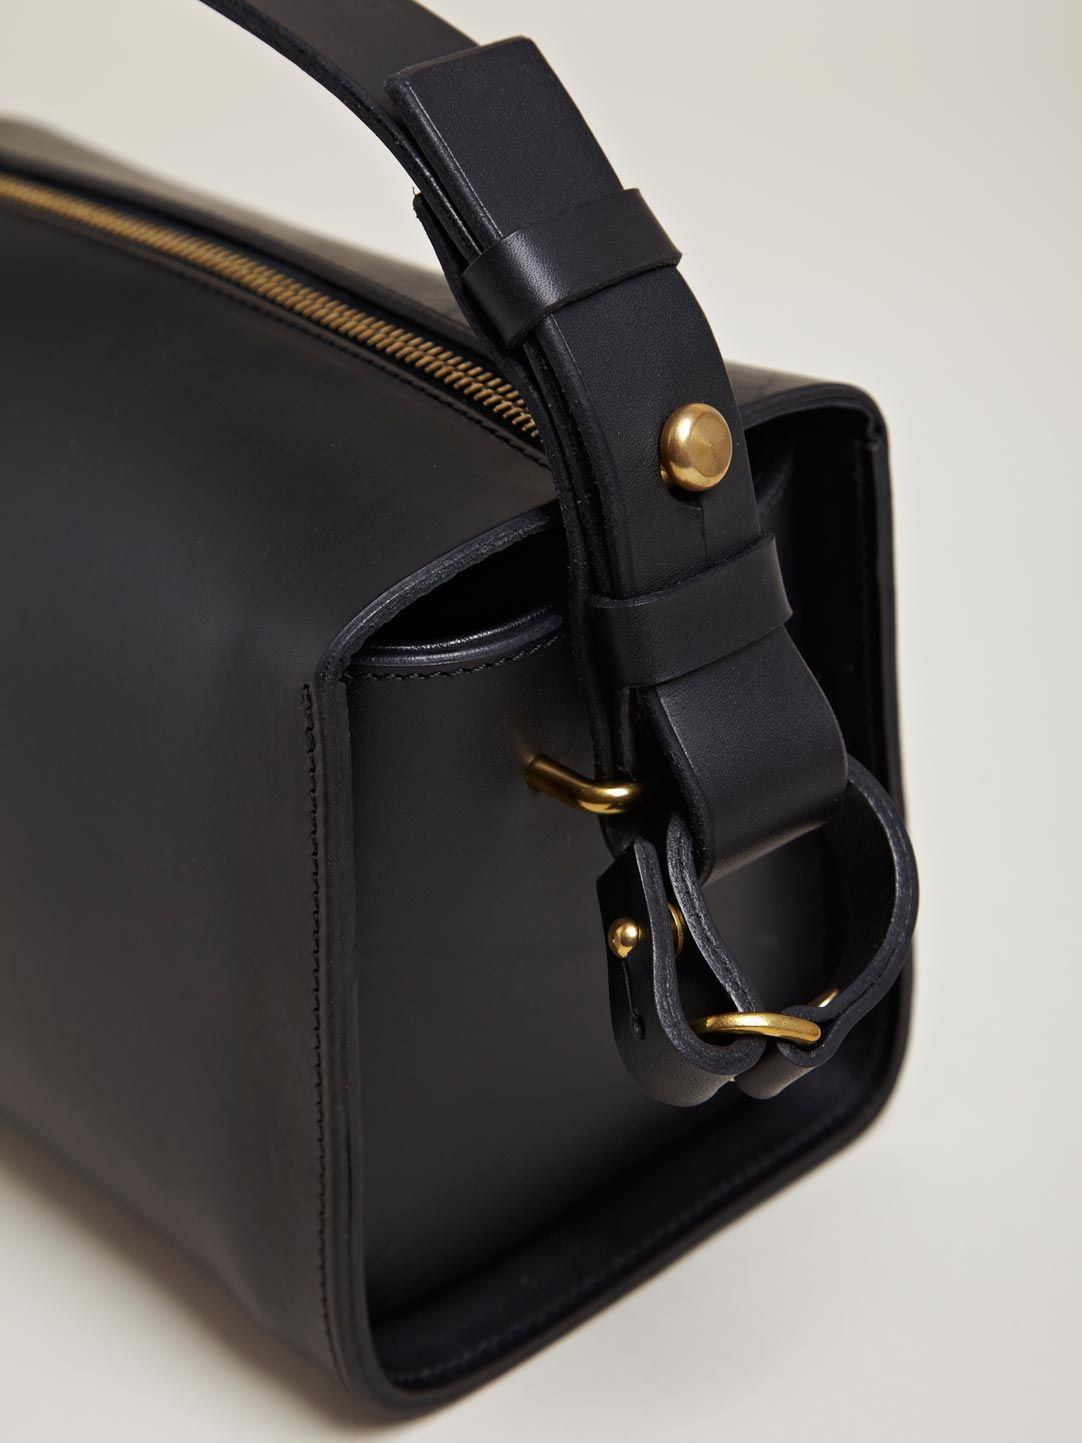 Fleet Ilya women's Box Bag from AW12 collection in black ...